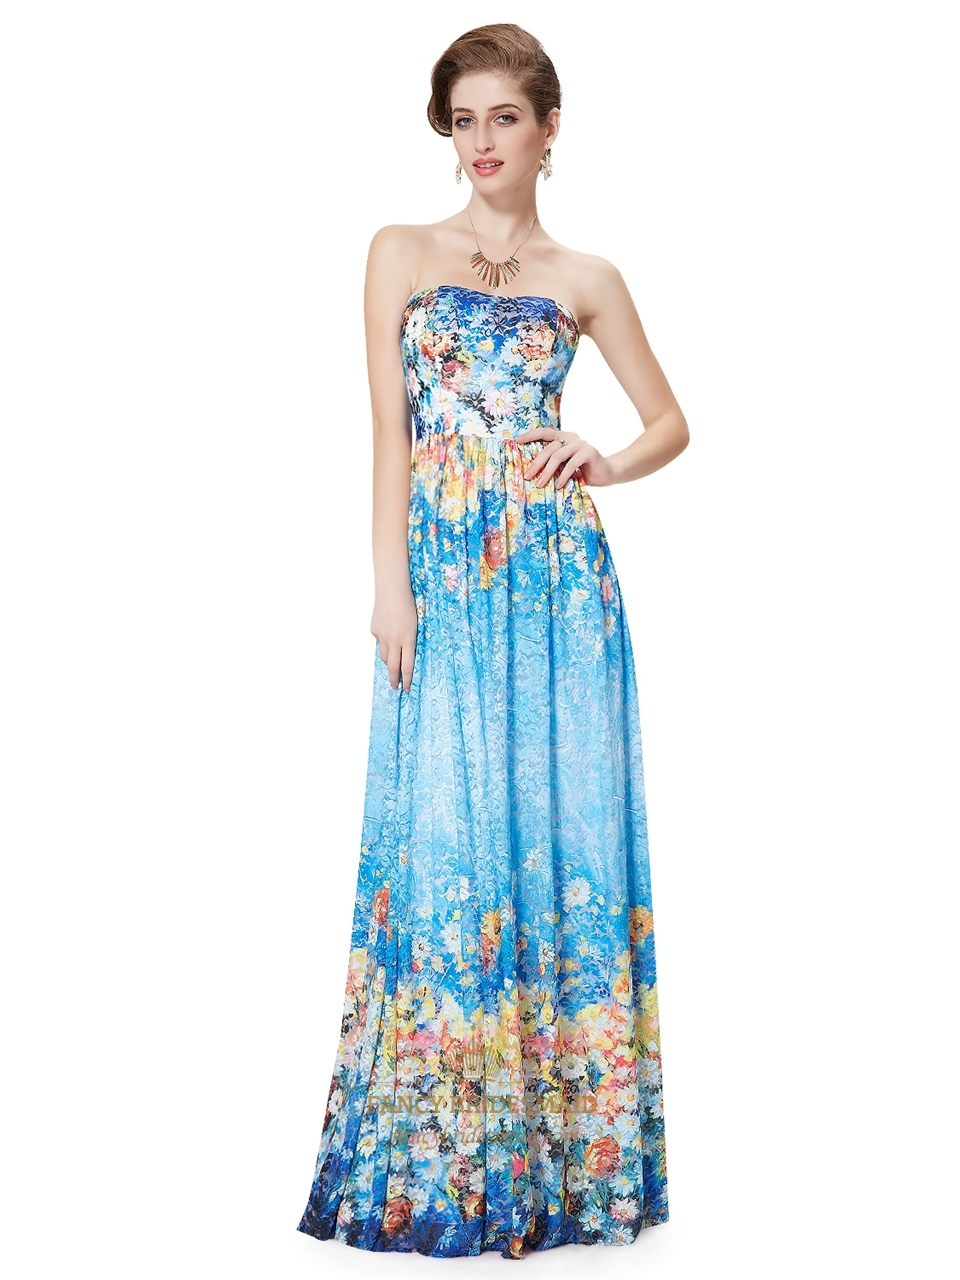 Blue floral print bridesmaid dressesstrapless padded floral print blue floral print bridesmaid dressesstrapless padded floral print sexy prom dress ombrellifo Images